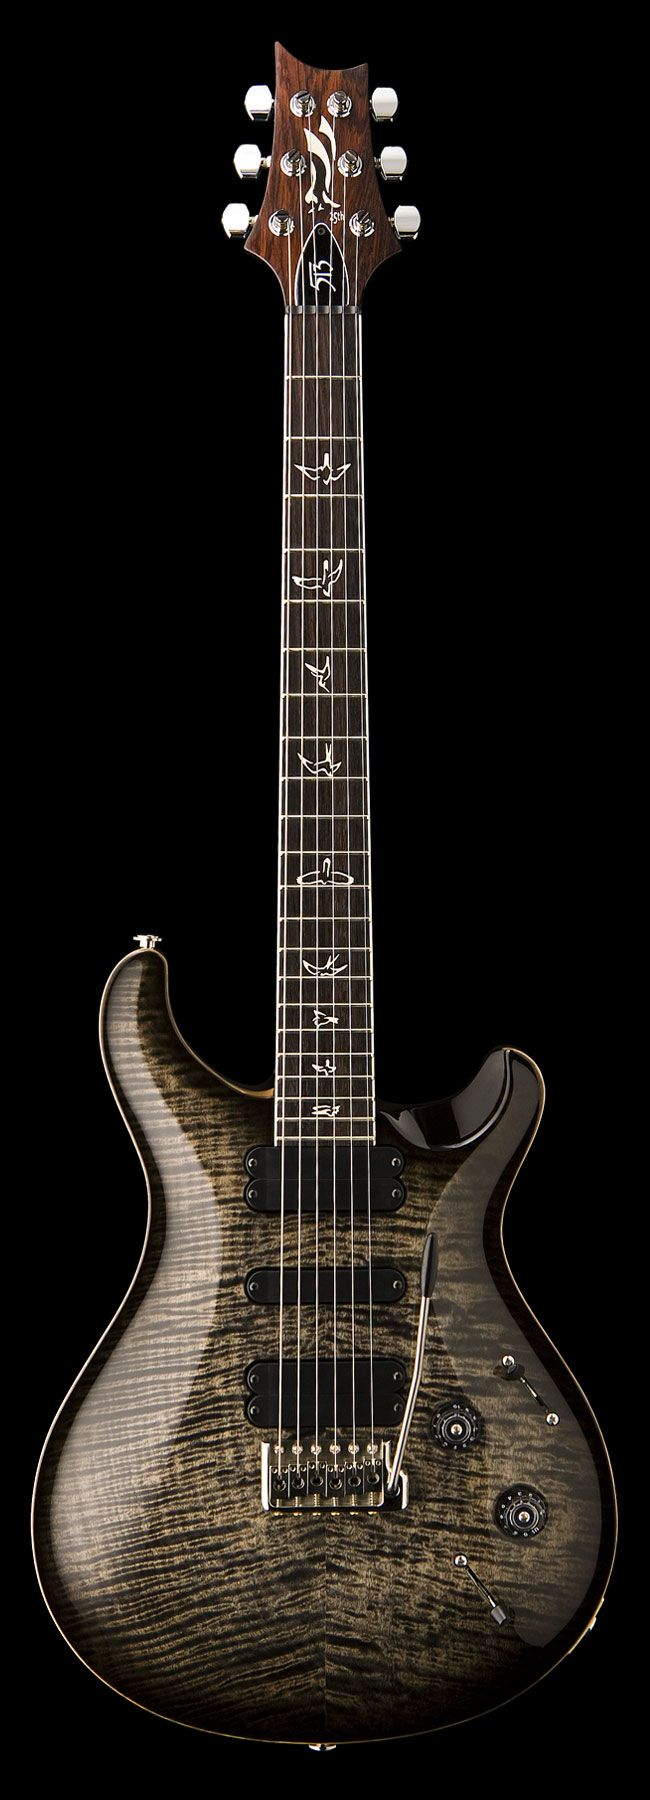 Paul Reed Smith Guitars 25th Anniversary 513 Charcoal Burst